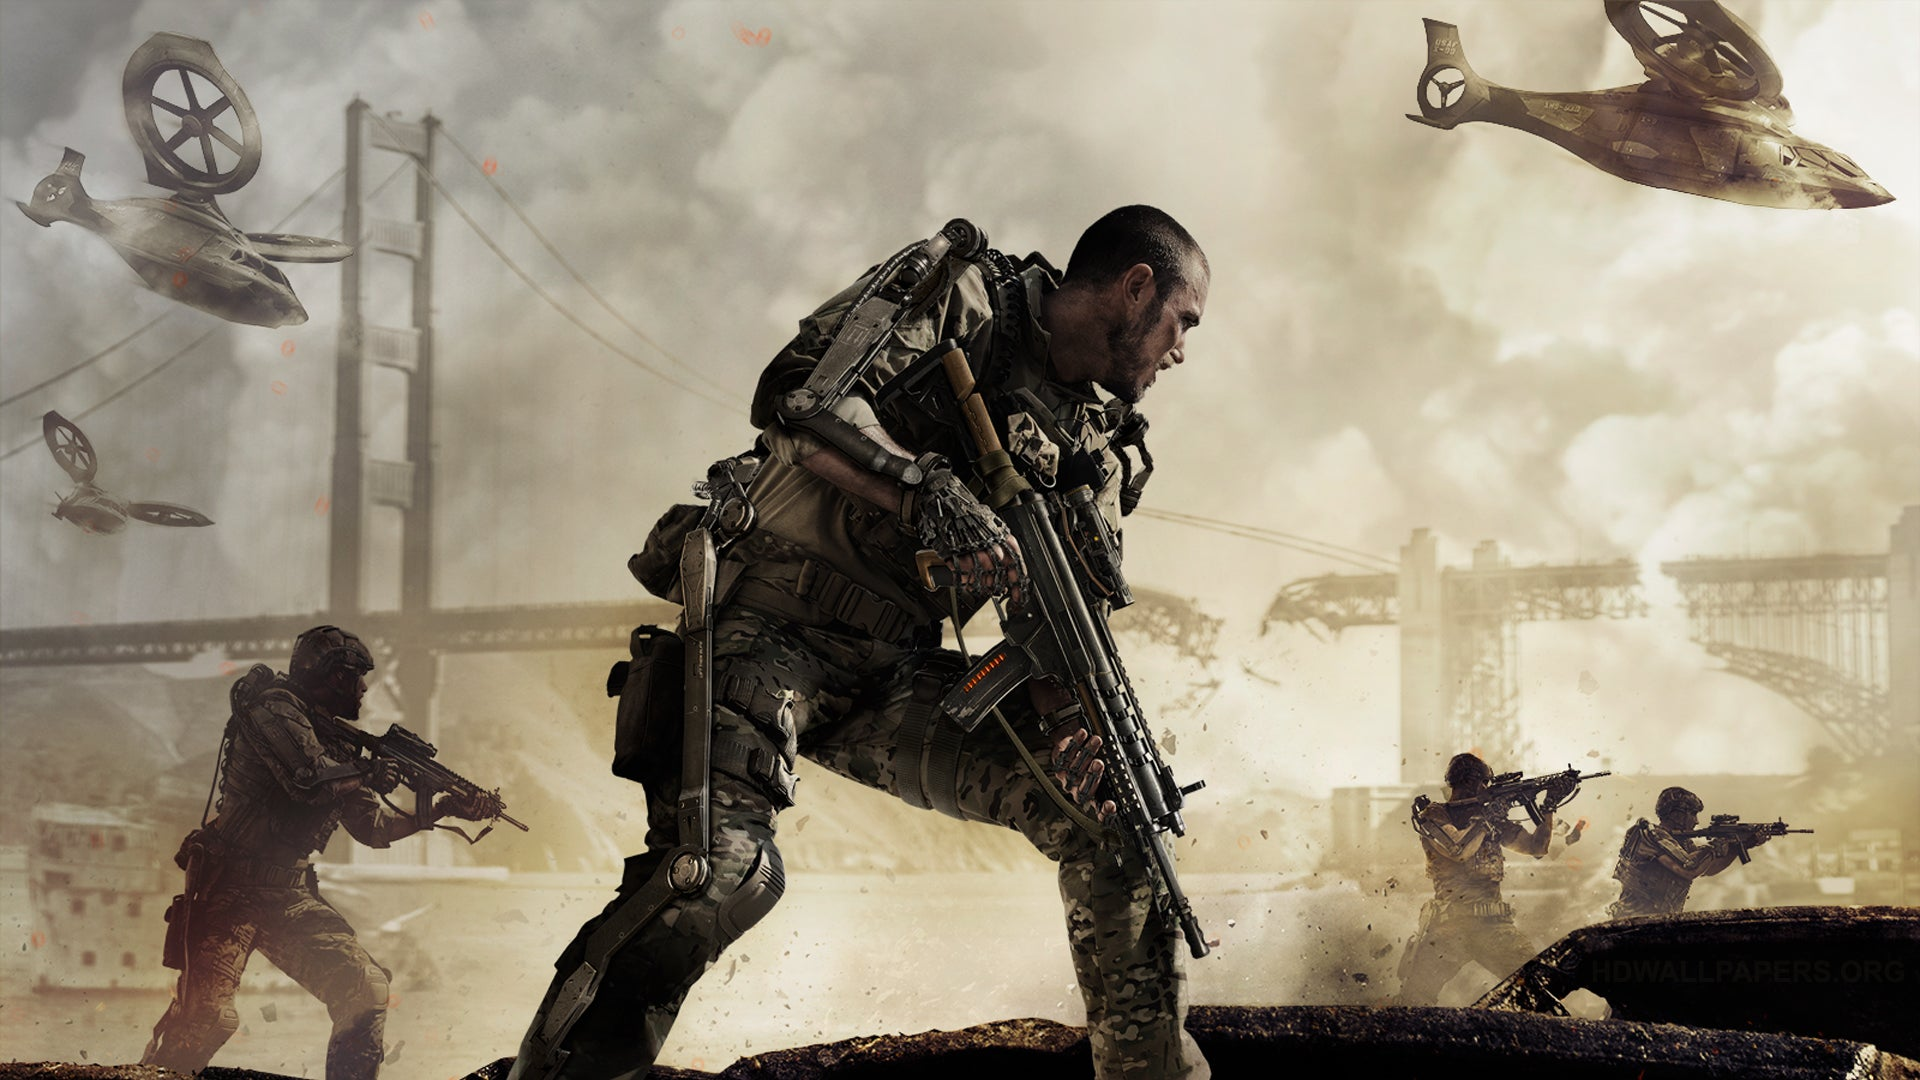 What Worked About Call of Duty: Advanced Warfare